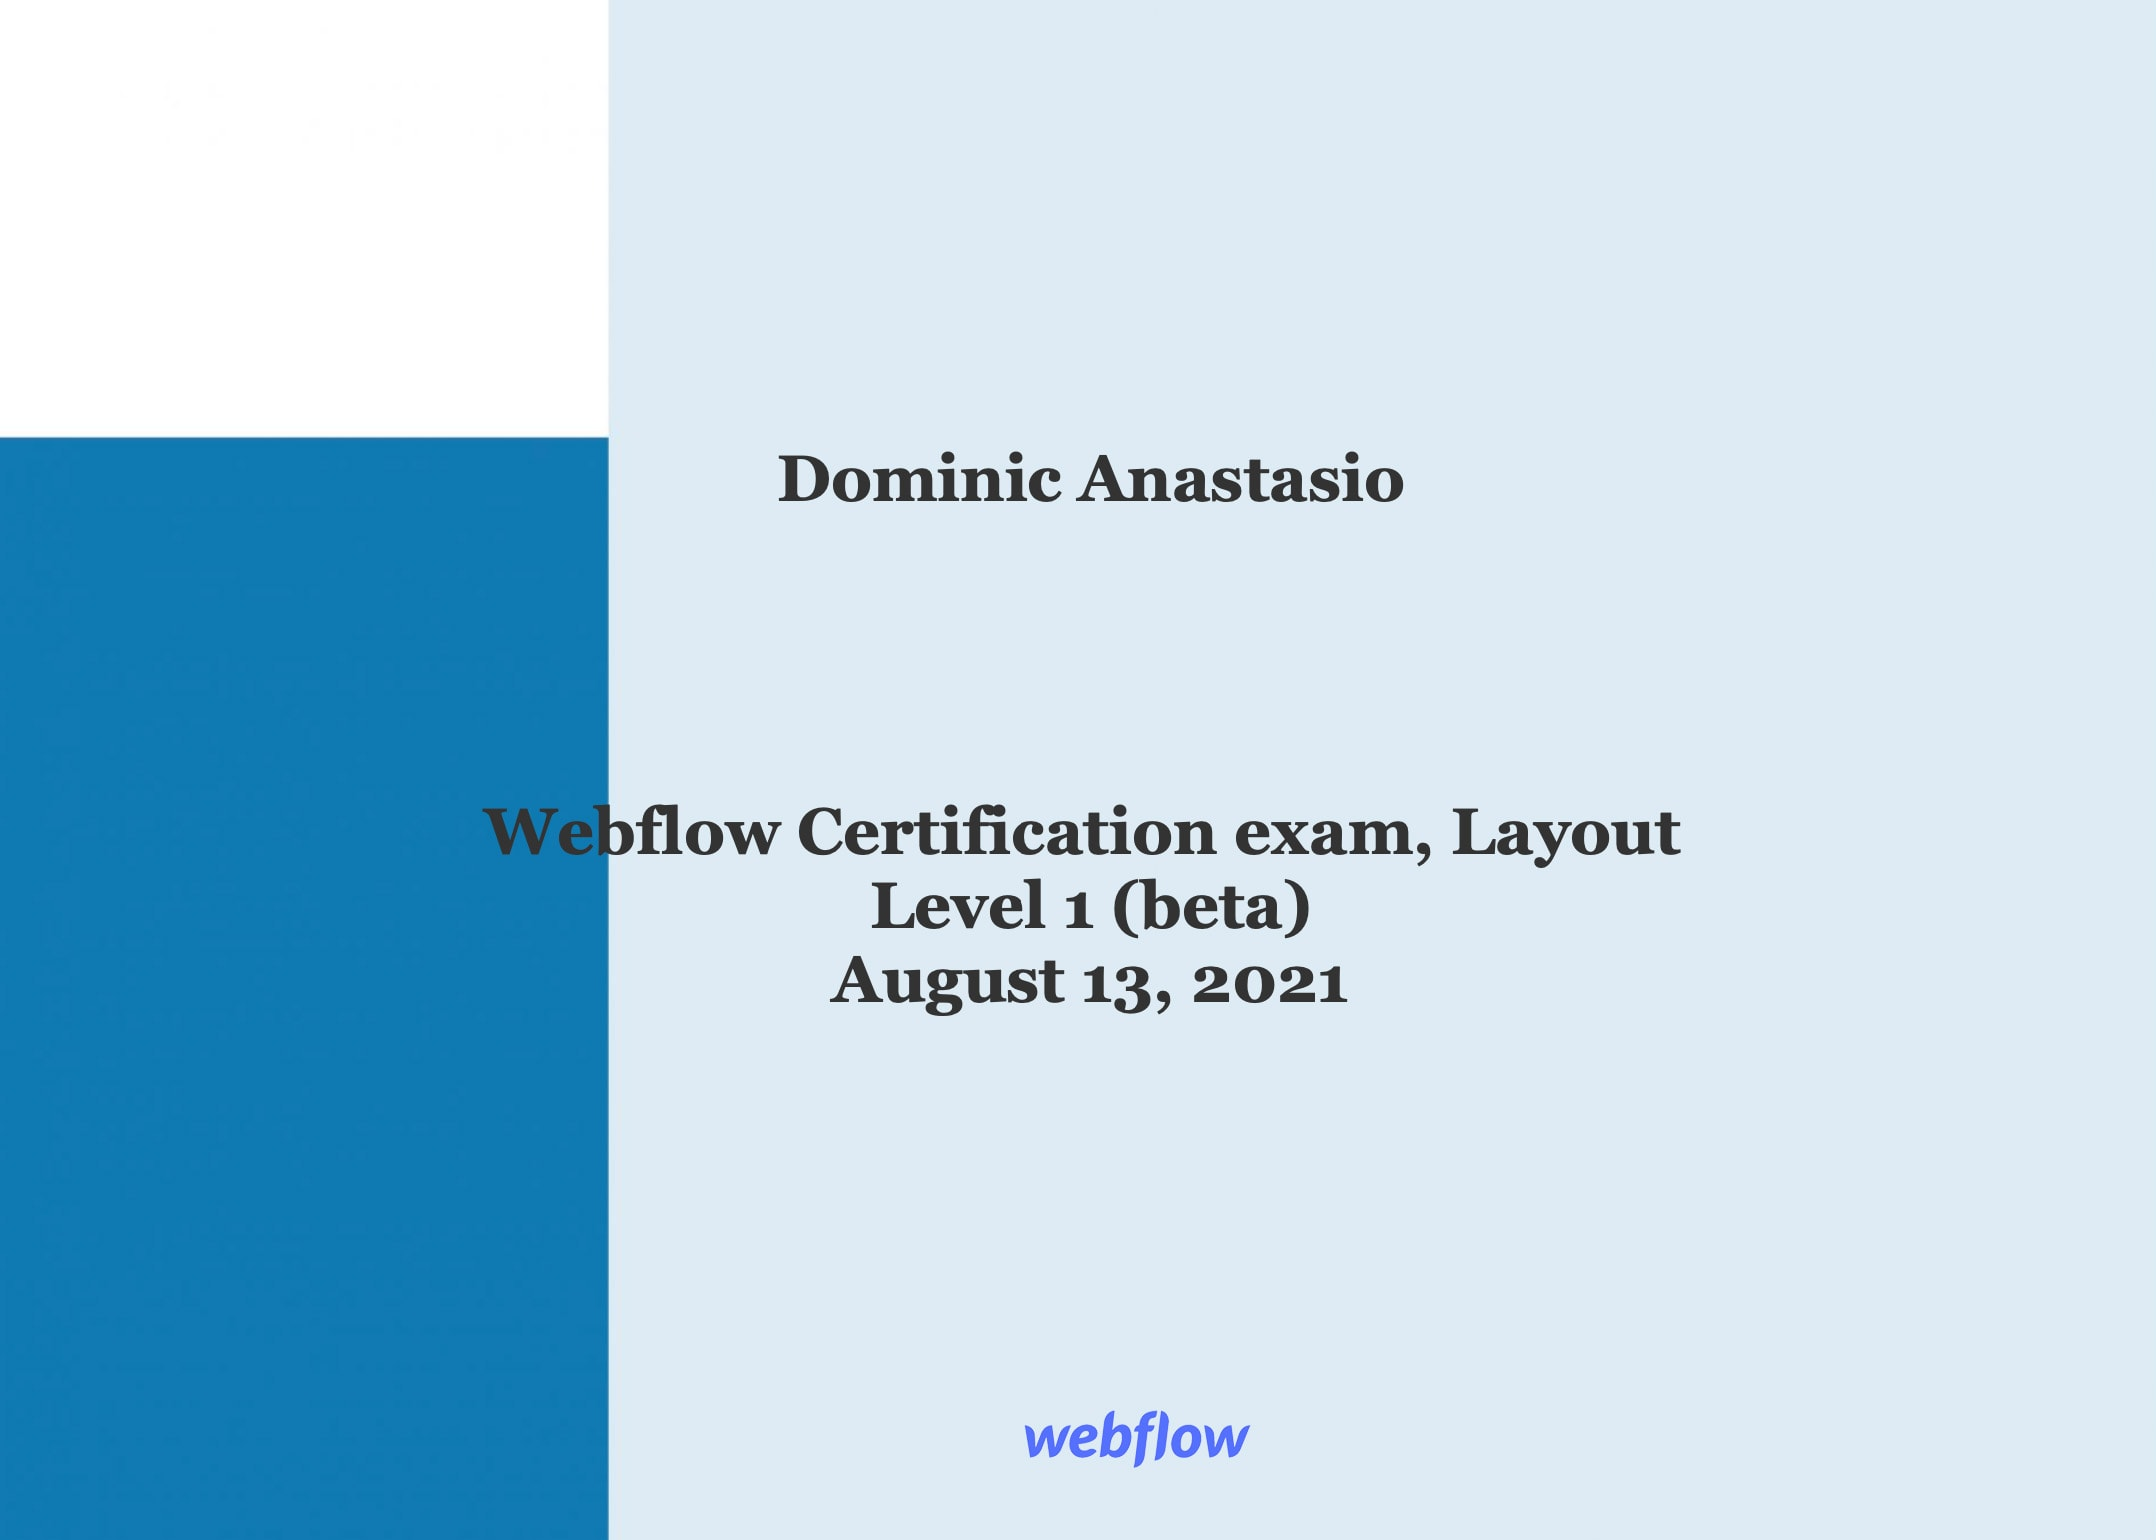 blue and white certificate image showing Dominic graduated Webflow Certification